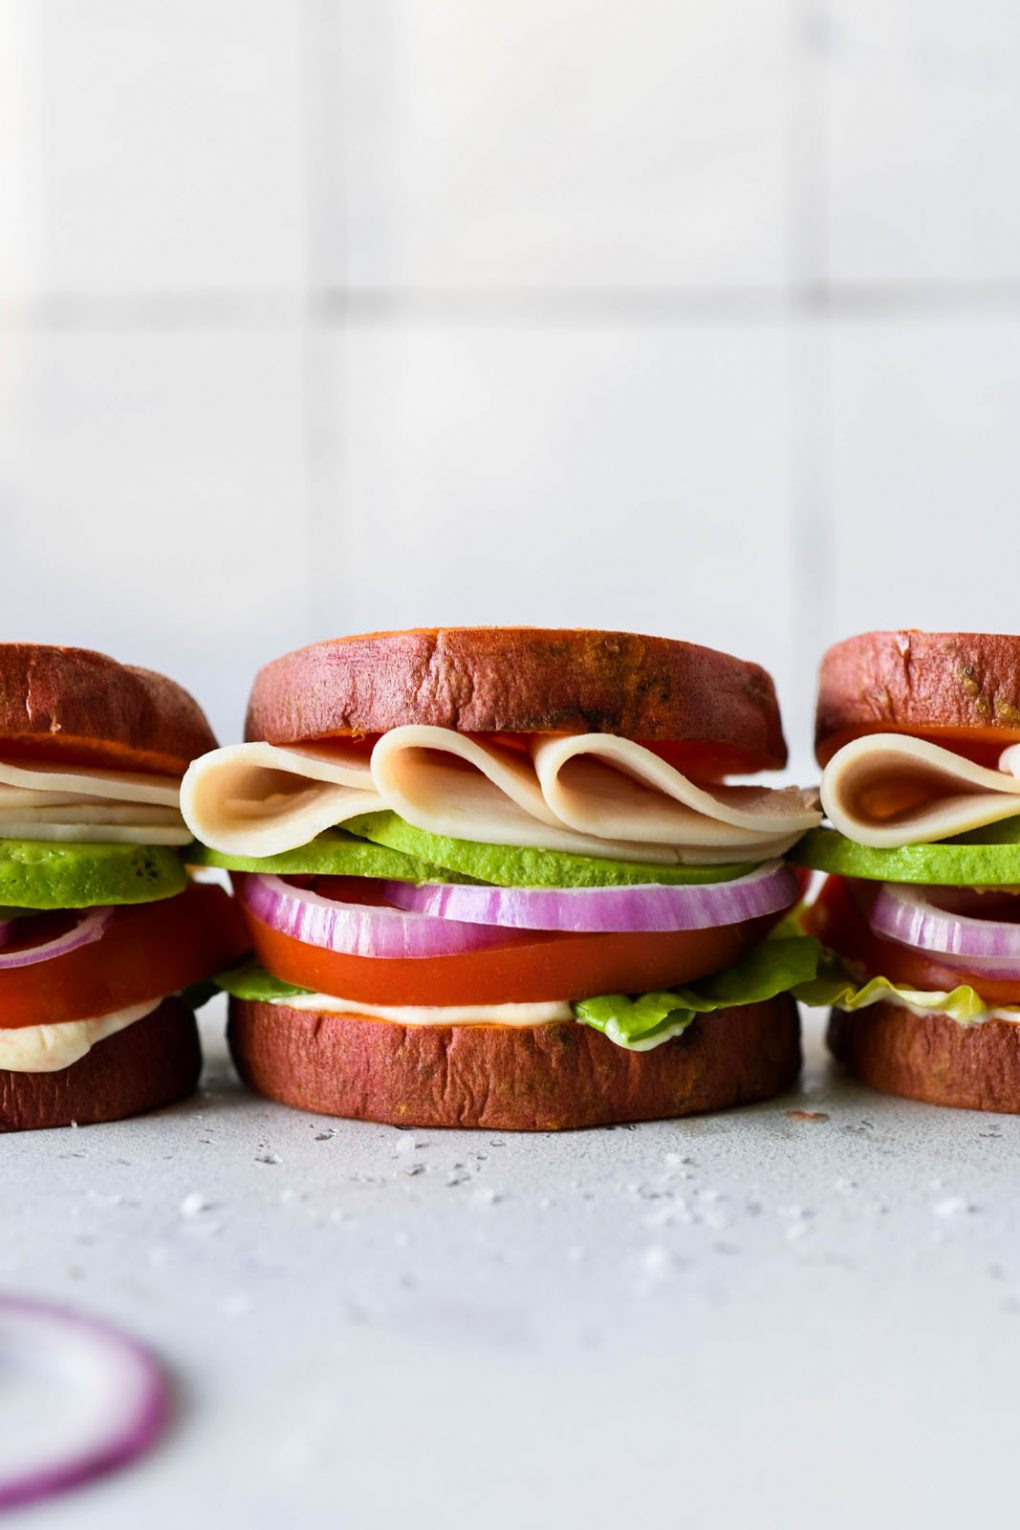 Straight on picture of three little deli style turkey sandwiches in a row made with roasted sweet potato rounds as buns. On a light background.